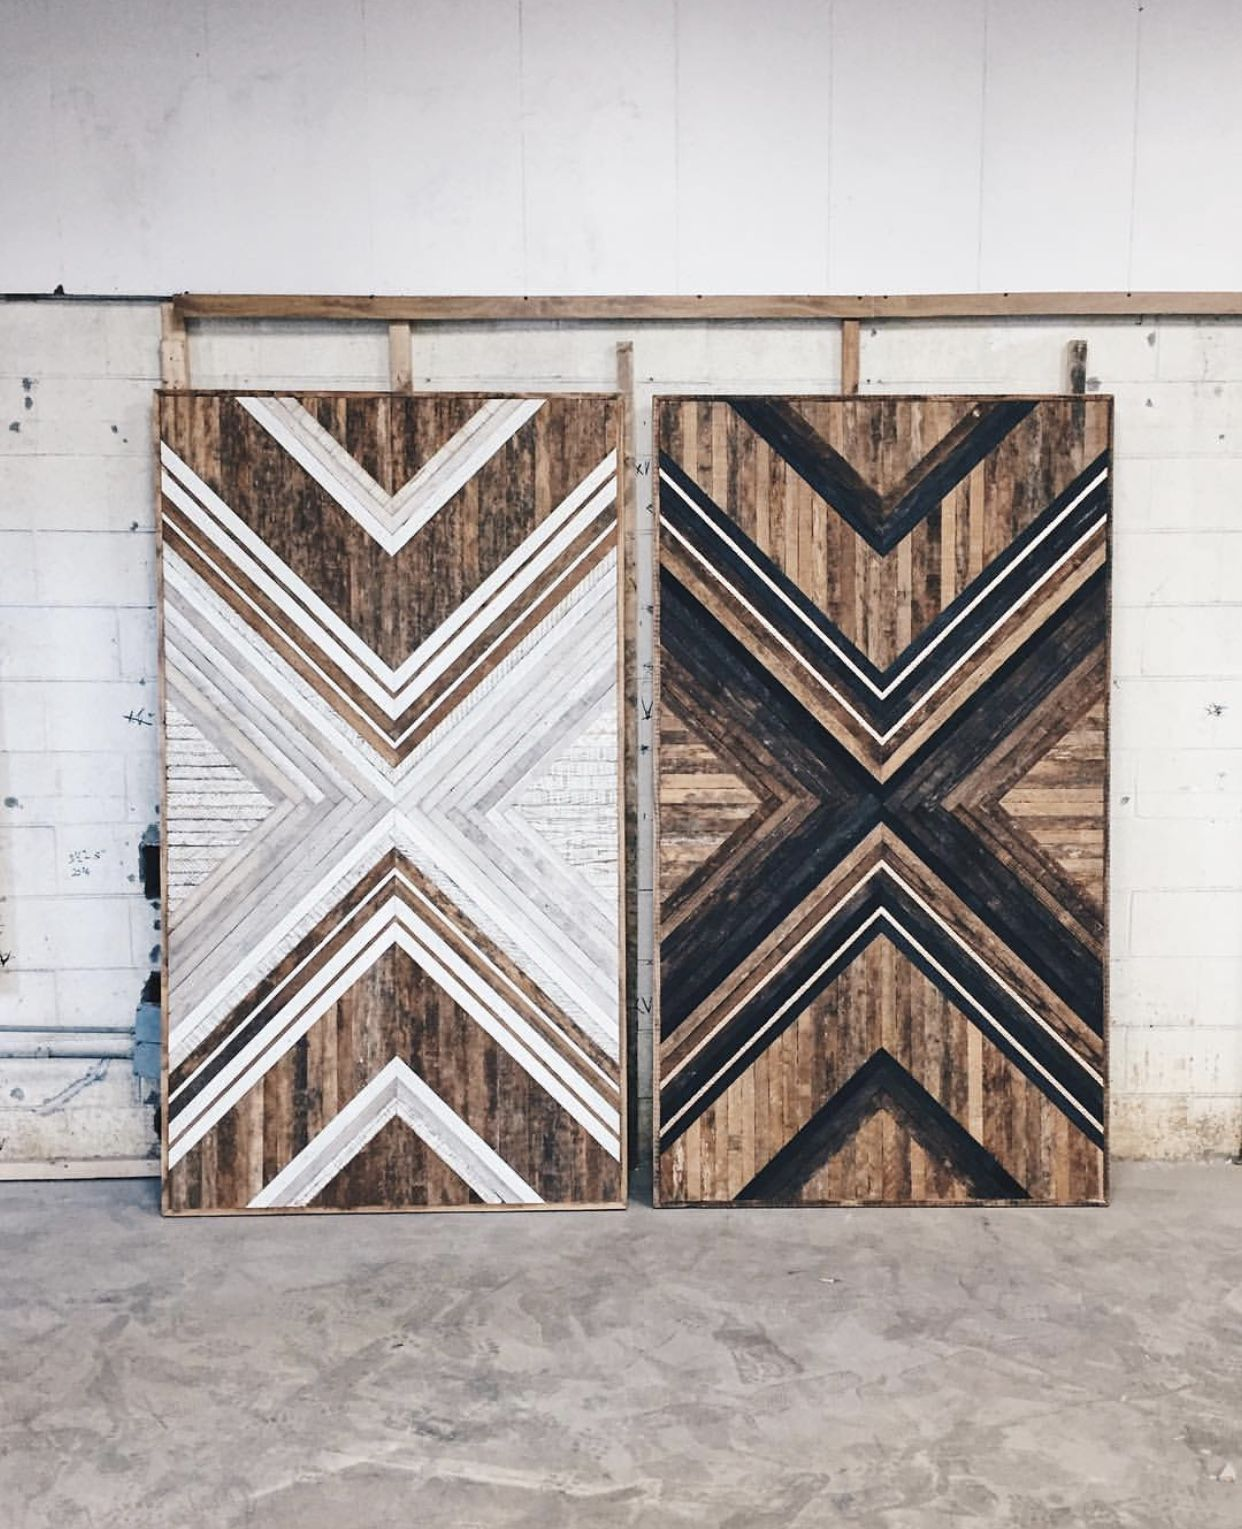 The pattern is a nice update on the barn wood sliding doors diy